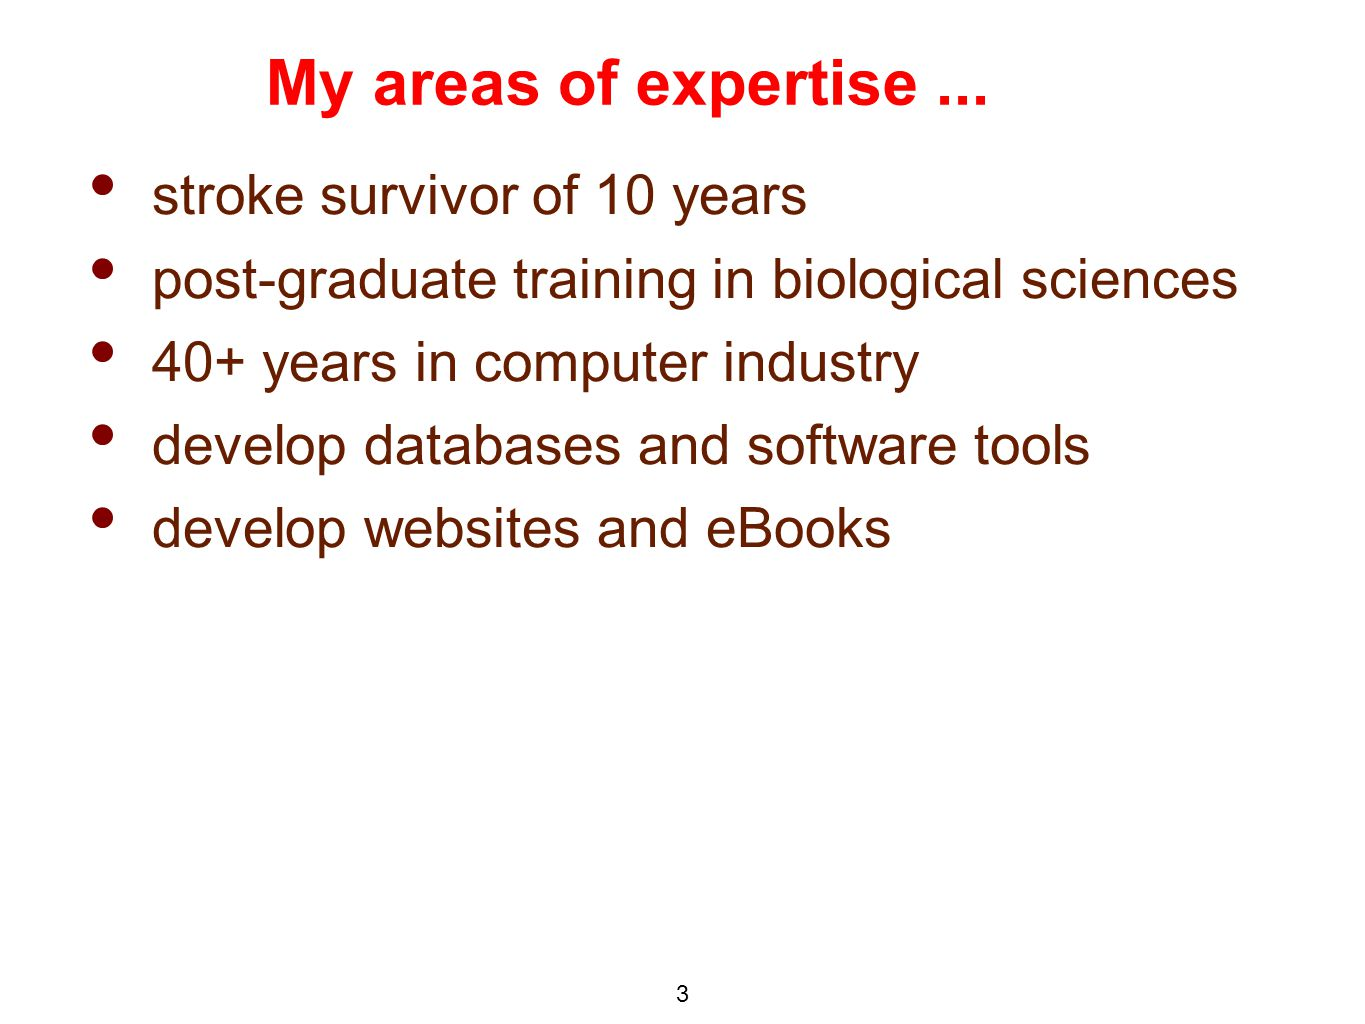 stroke survivor of 10 years post-graduate training in biological sciences 40+ years in computer industry develop databases and software tools develop websites and eBooks My areas of expertise...